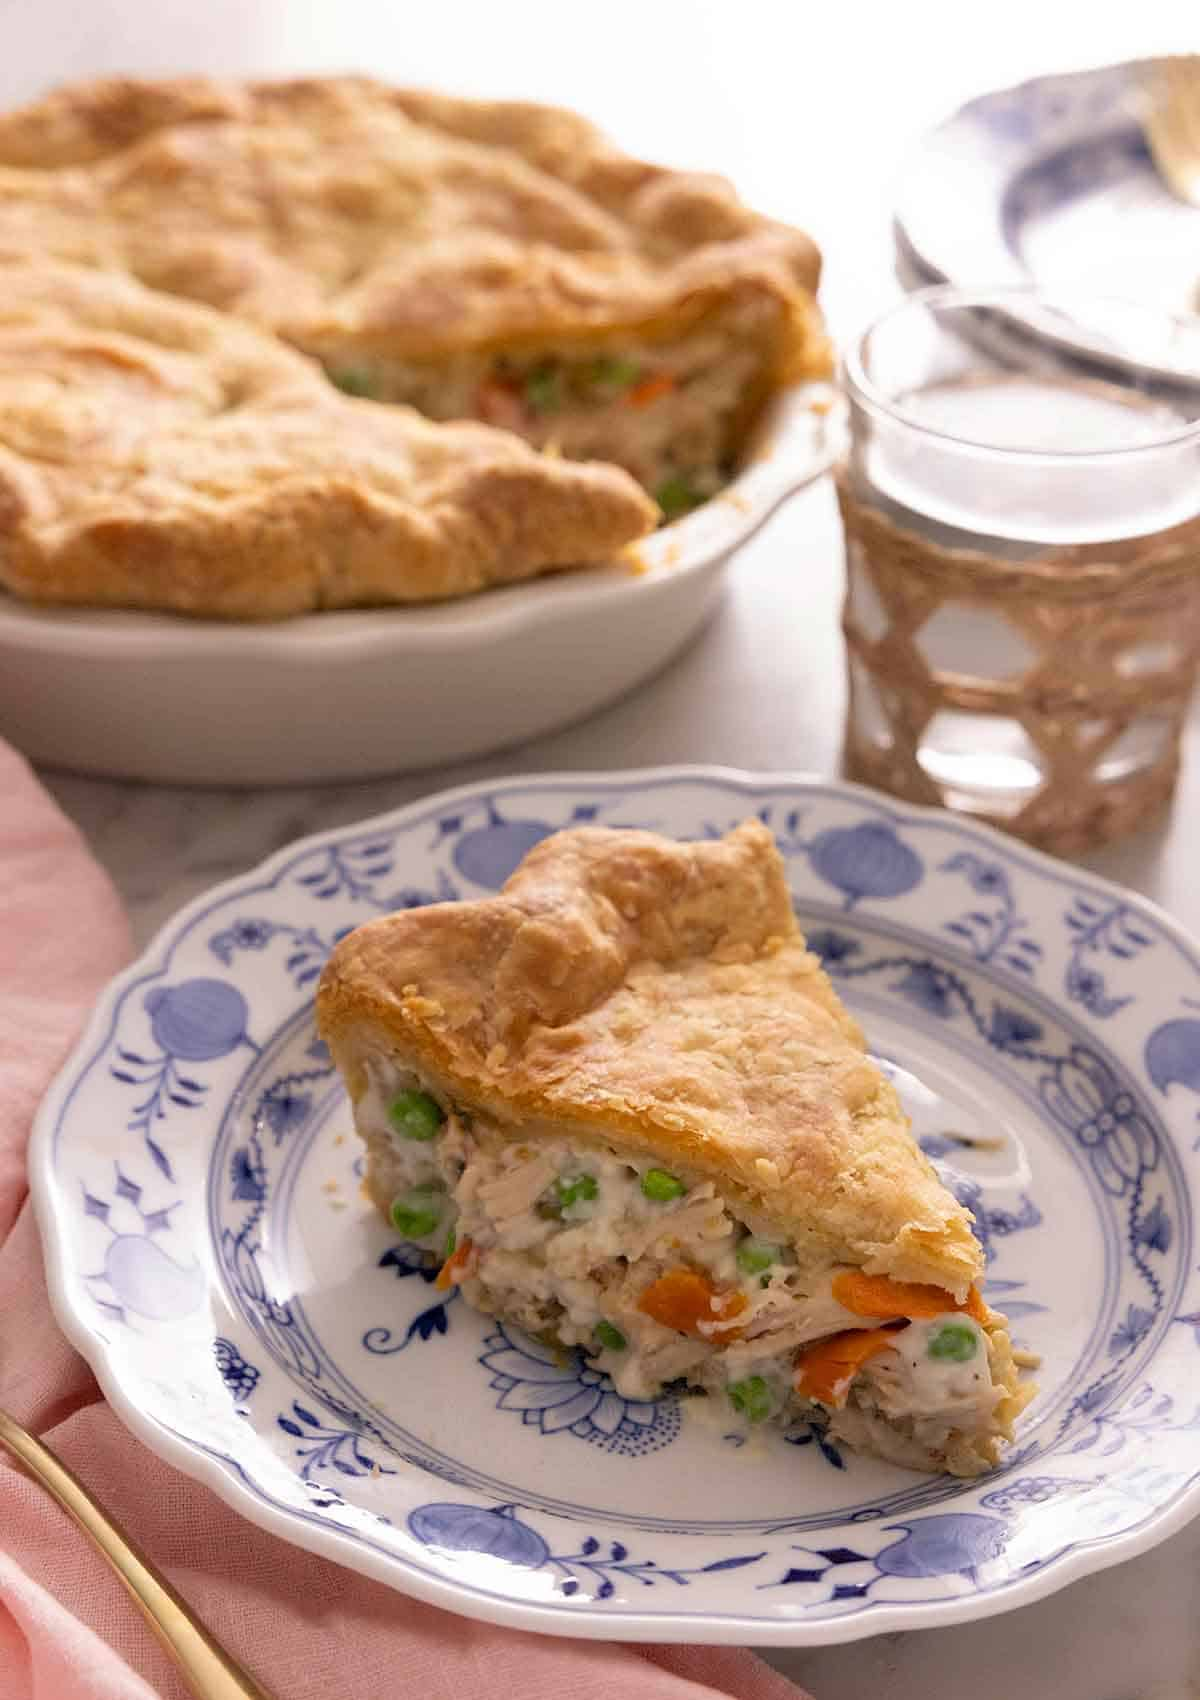 A plate of with a slice of chicken pot pie in front of a glass of water and the pie dish.